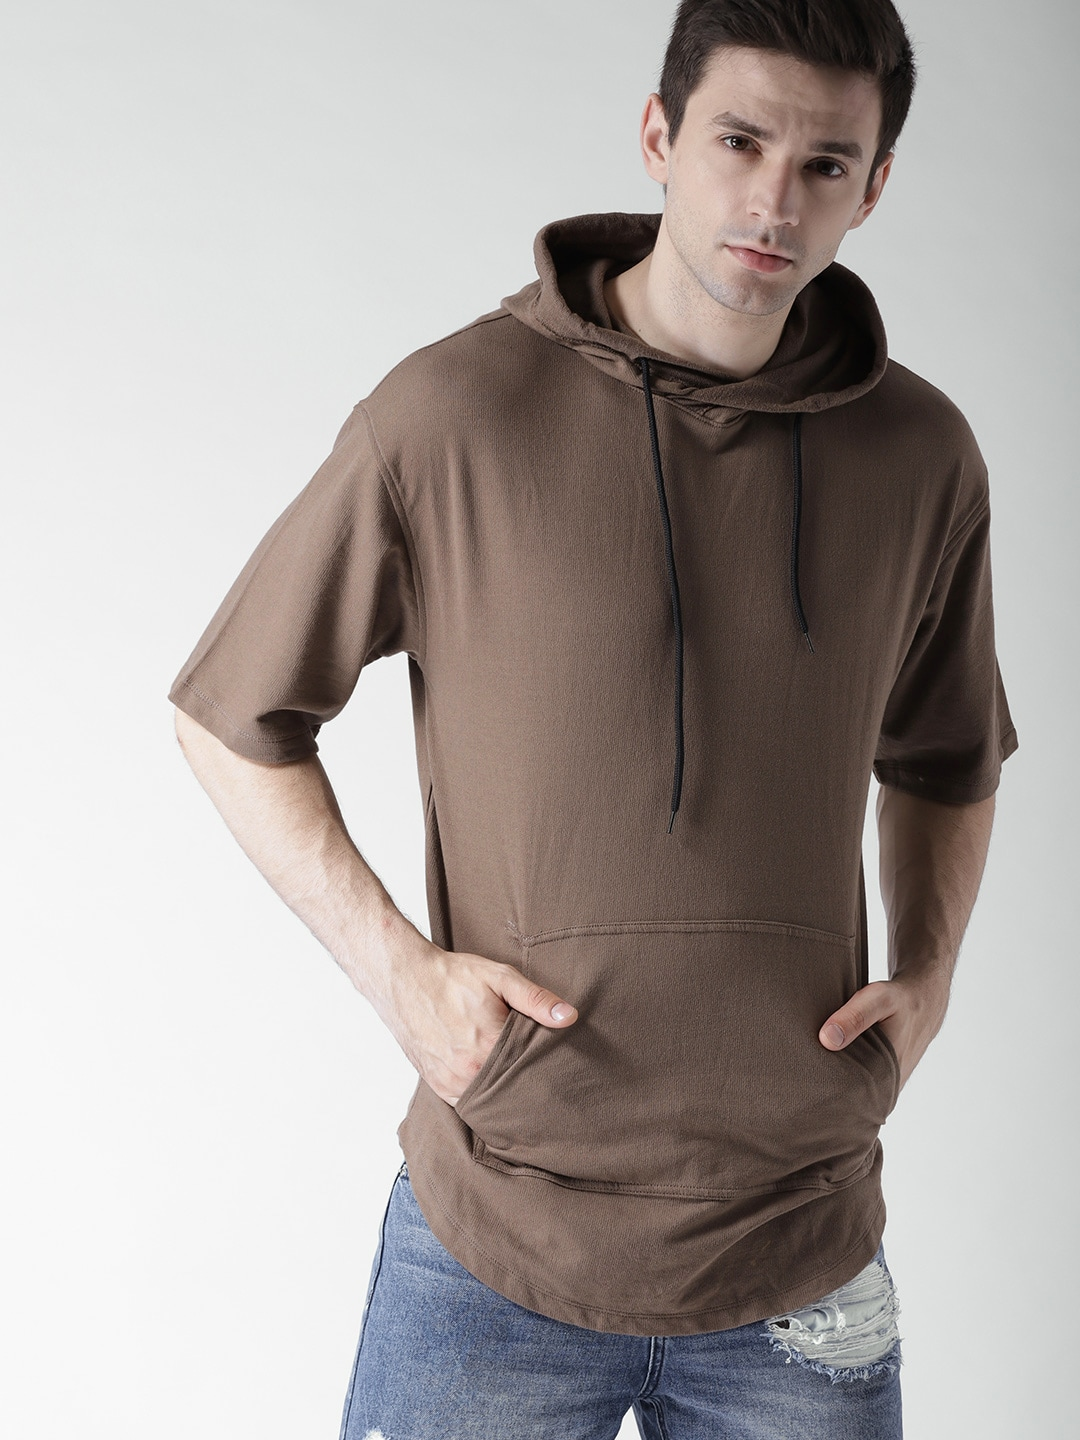 Buy FOREVER 21 Brown Solid Hooded Men's Sweatshirt At Best Price